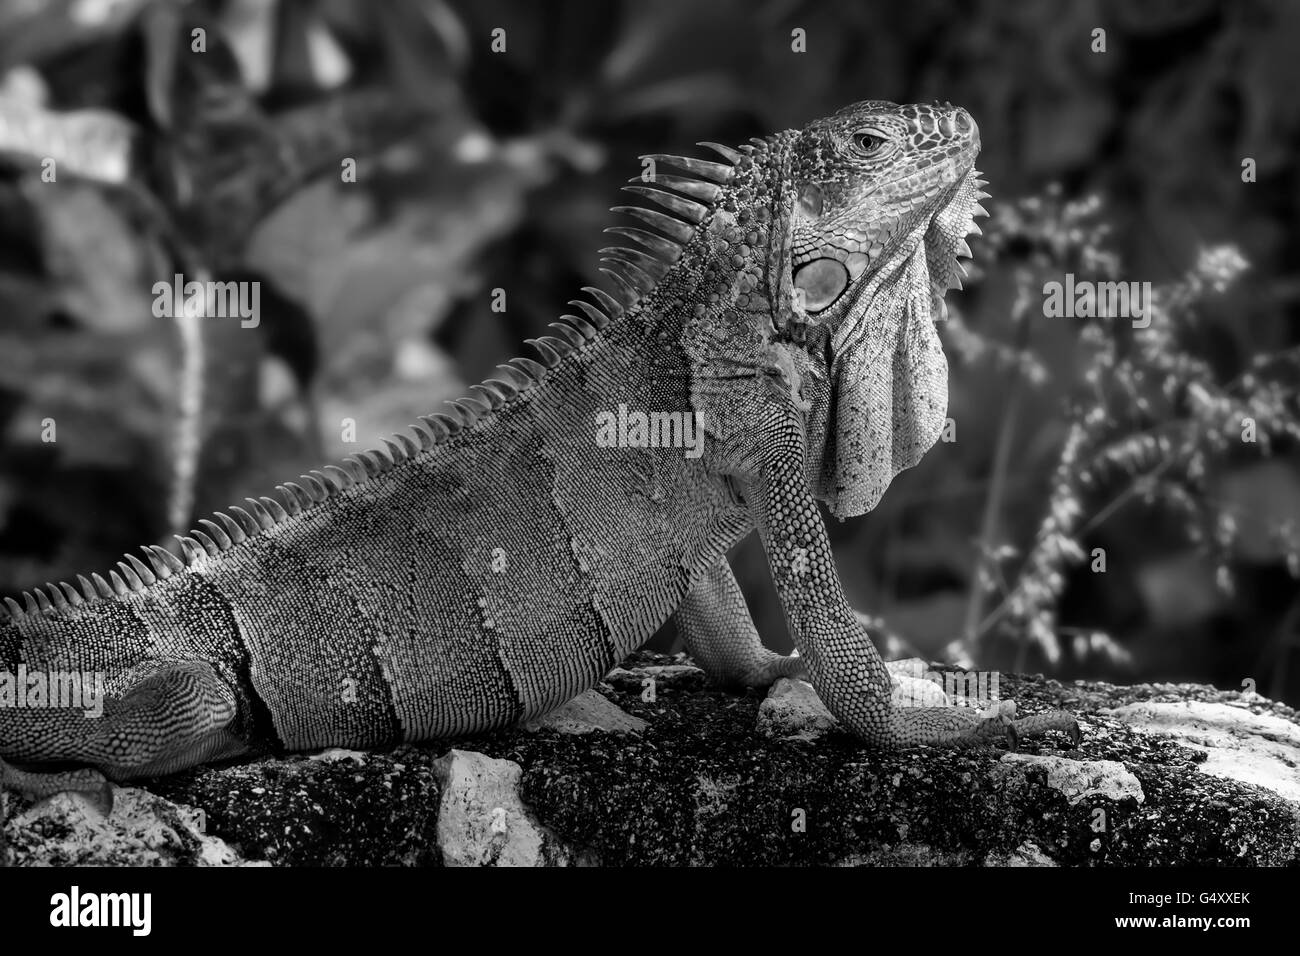 Large bearded lizard in black & white - Stock Image